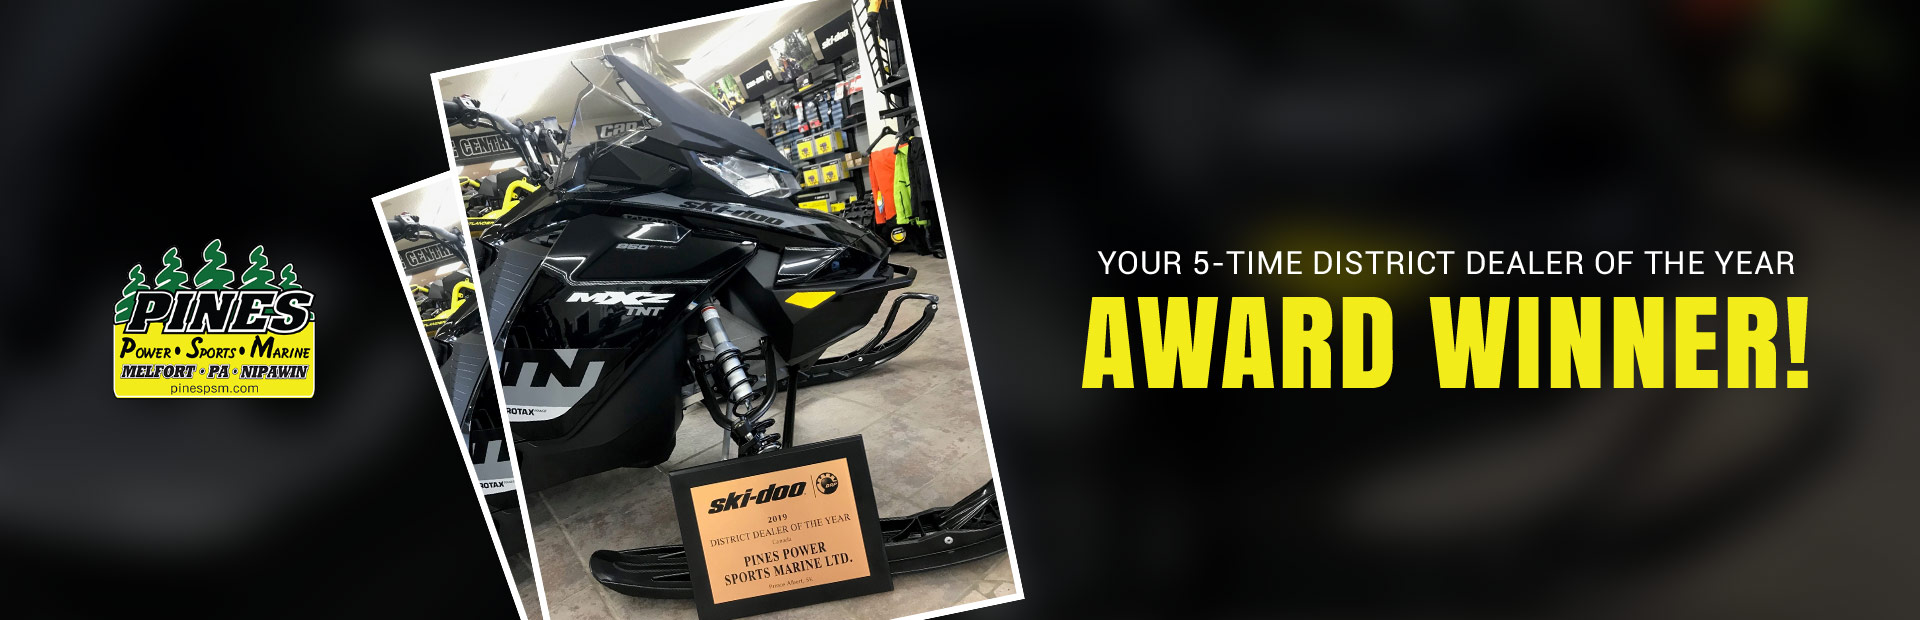 Pines Power Sports Marine: Your 5-time District Dealer of the Year award winner! Click here for deta